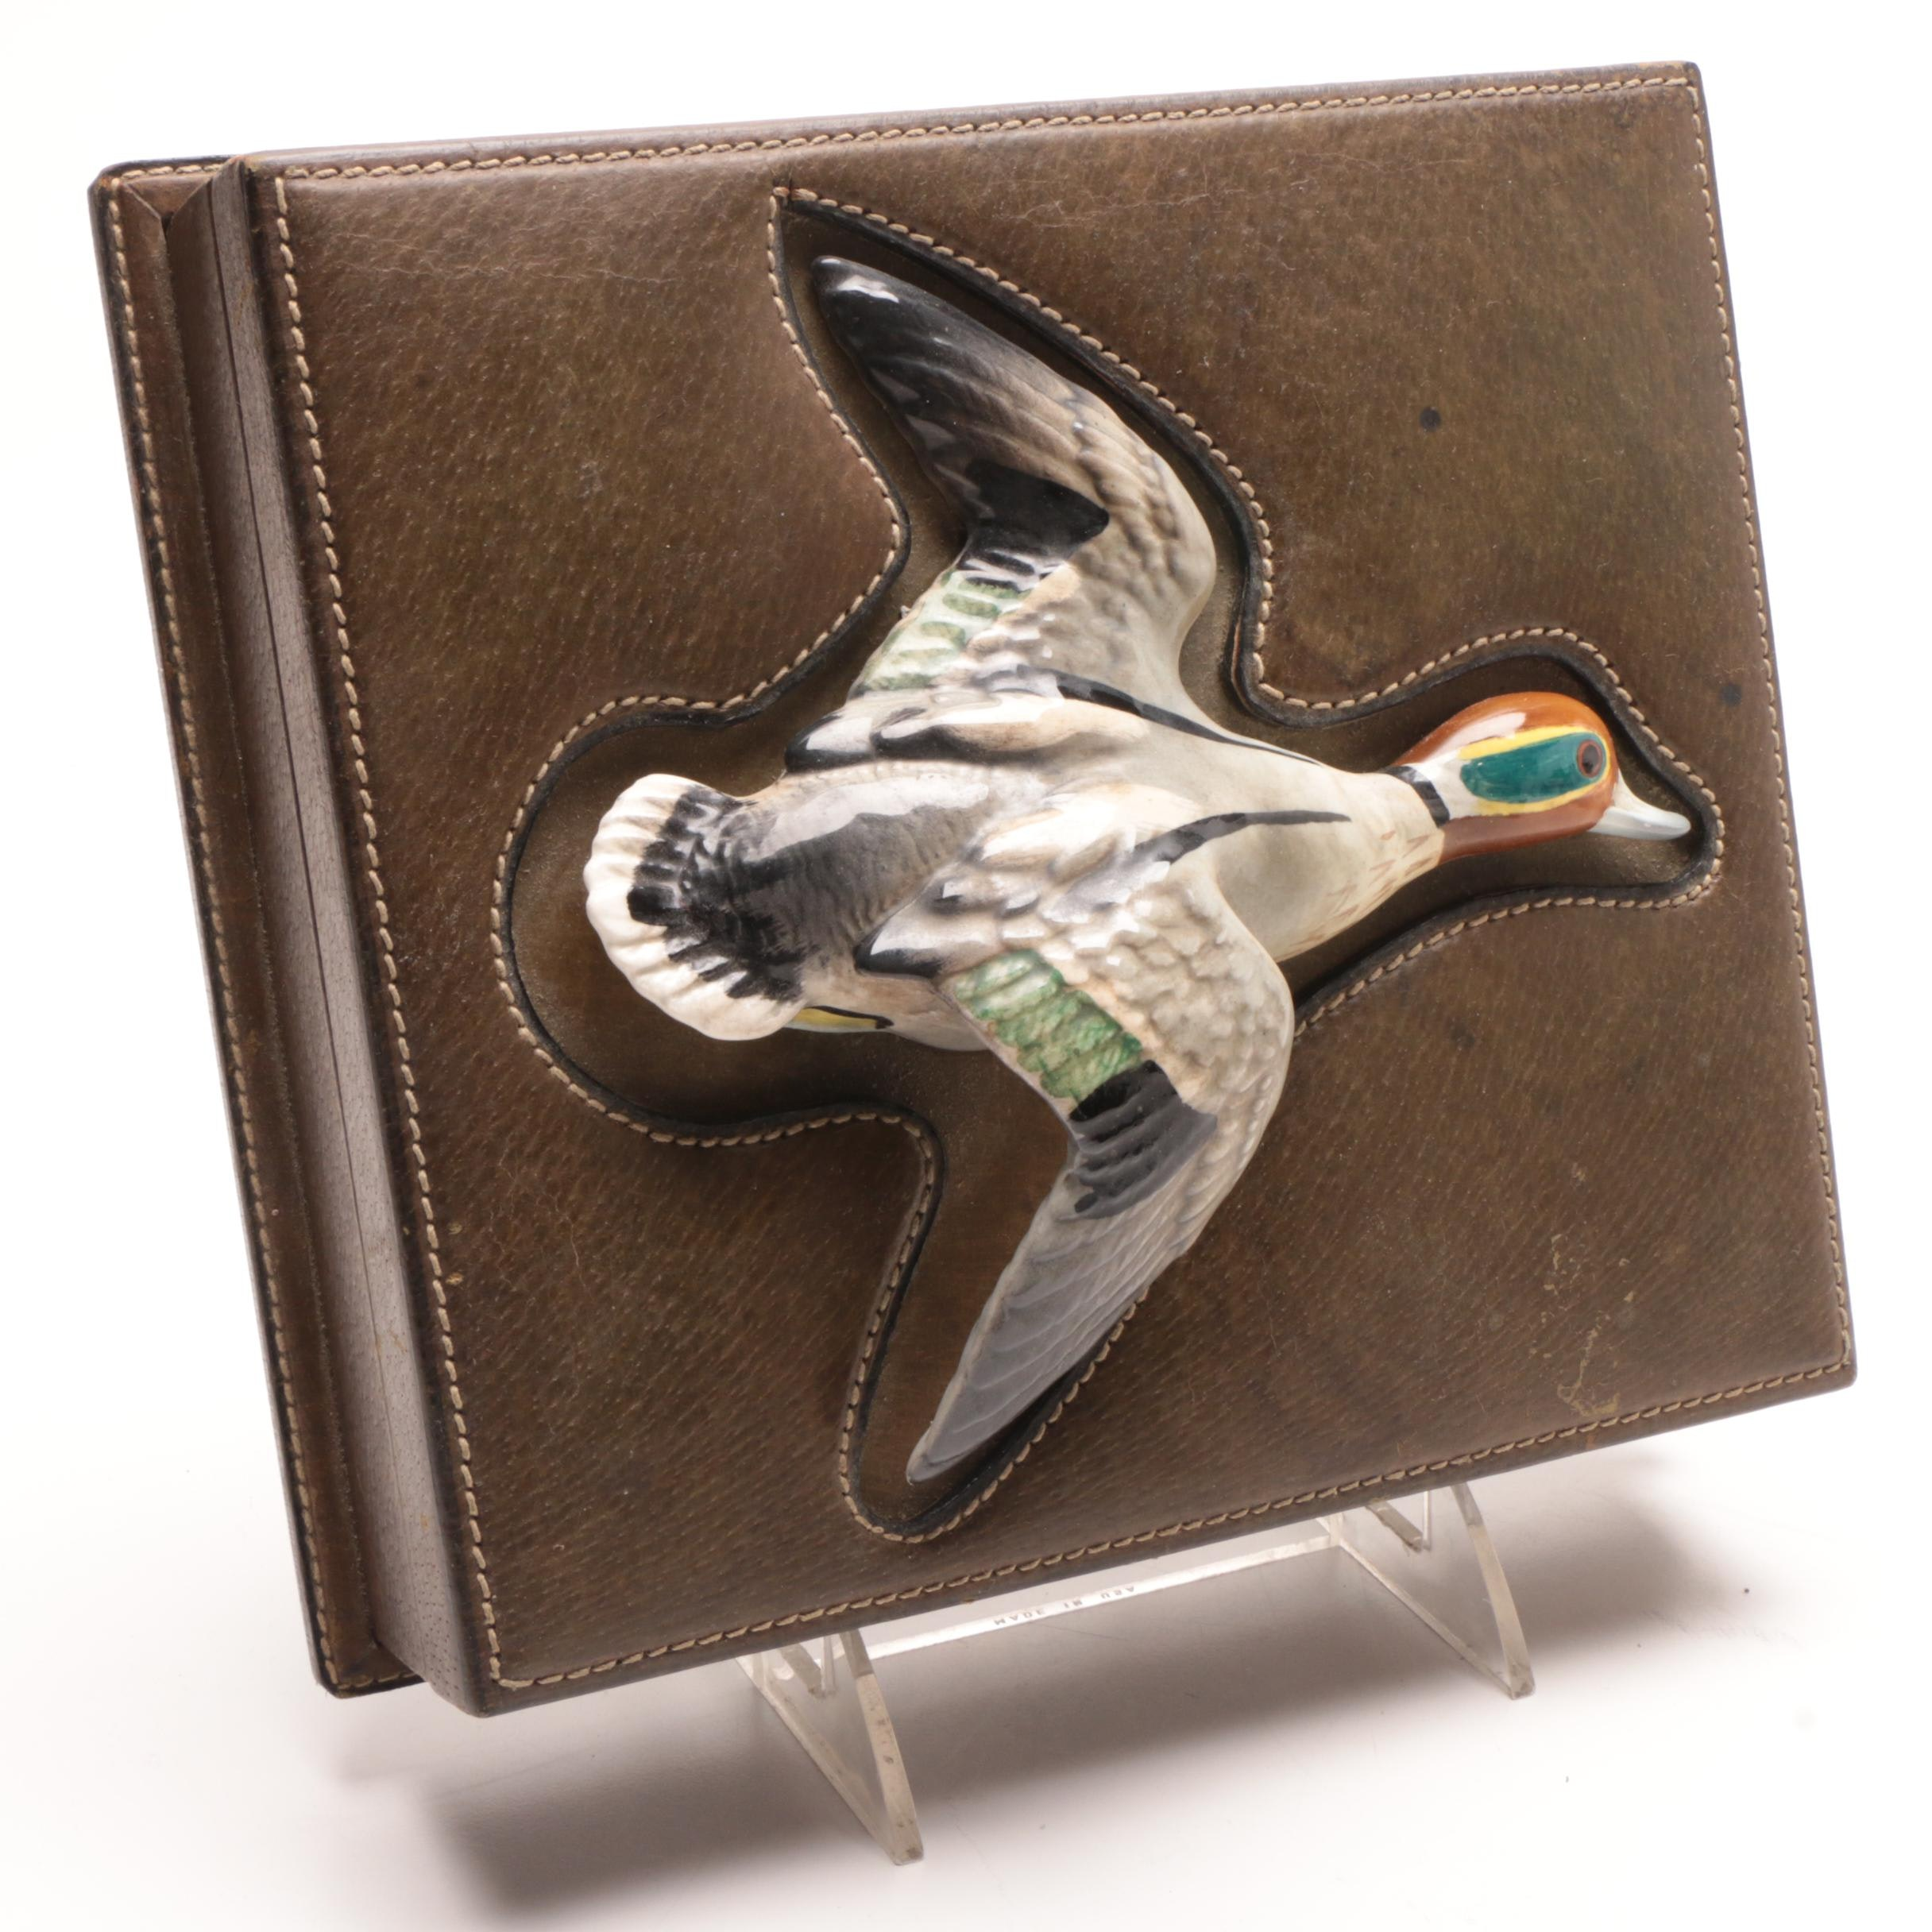 Men's Gucci Leather Jewelry Box with Ceramic Duck Handle